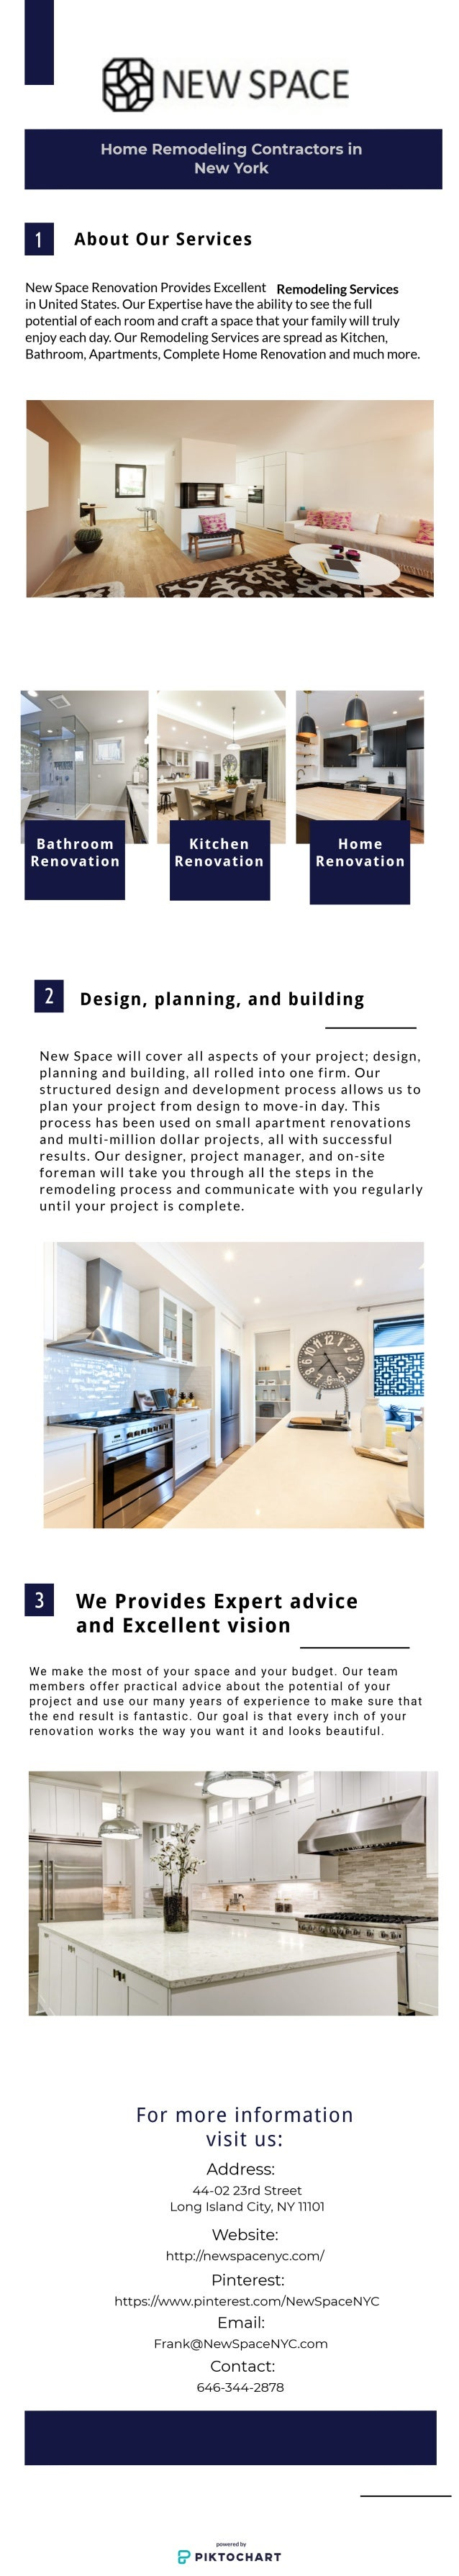 Excellent Home Remodeling Services in New York